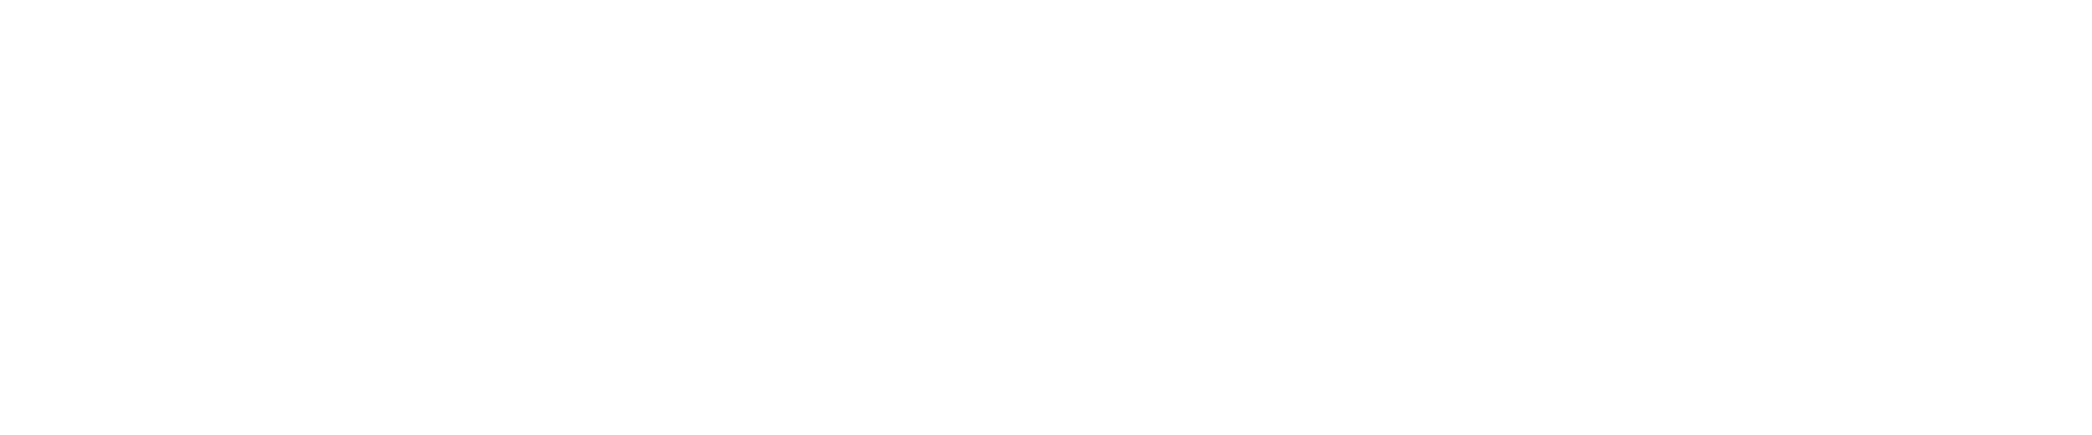 Chase Meadows Community